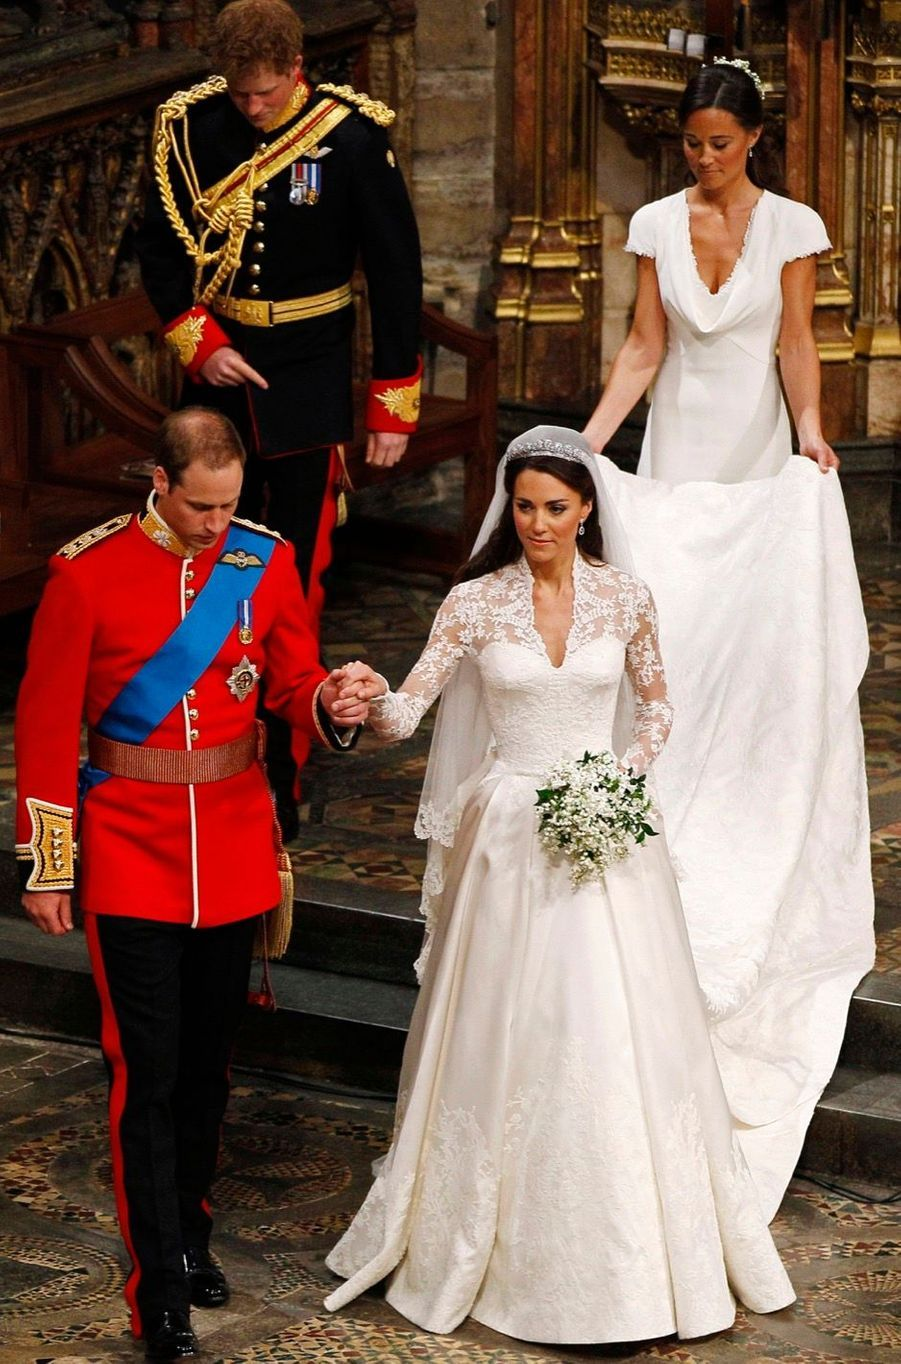 Pippa Middleton Au Mariage De Sa Soeur Kate Middleton Avec Le Prince William, Le 29 Avril 2011 À Londres 24